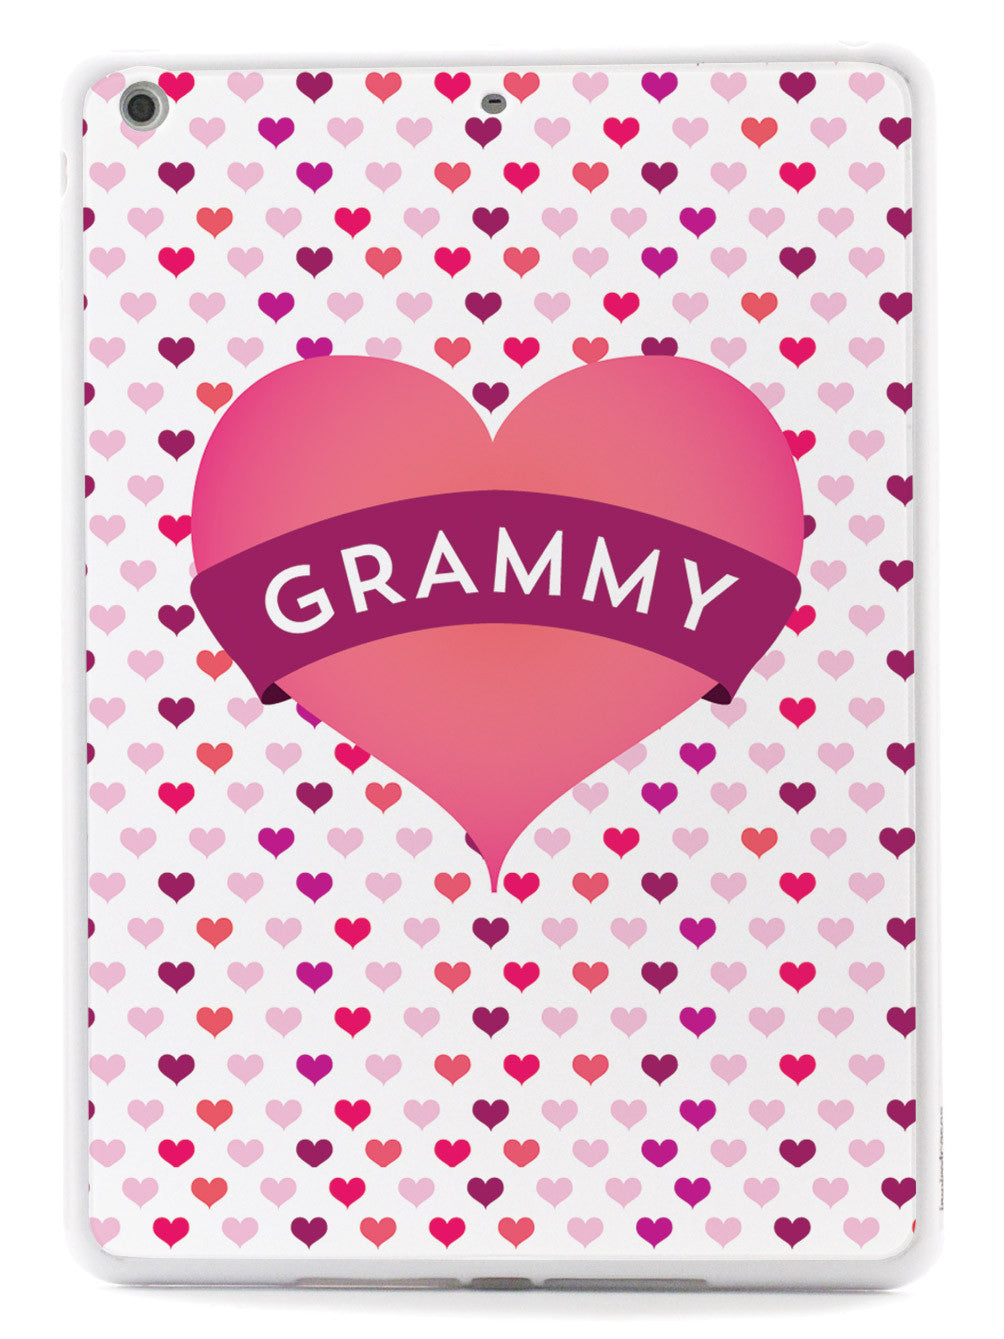 Grammy Heart for Grandma Case